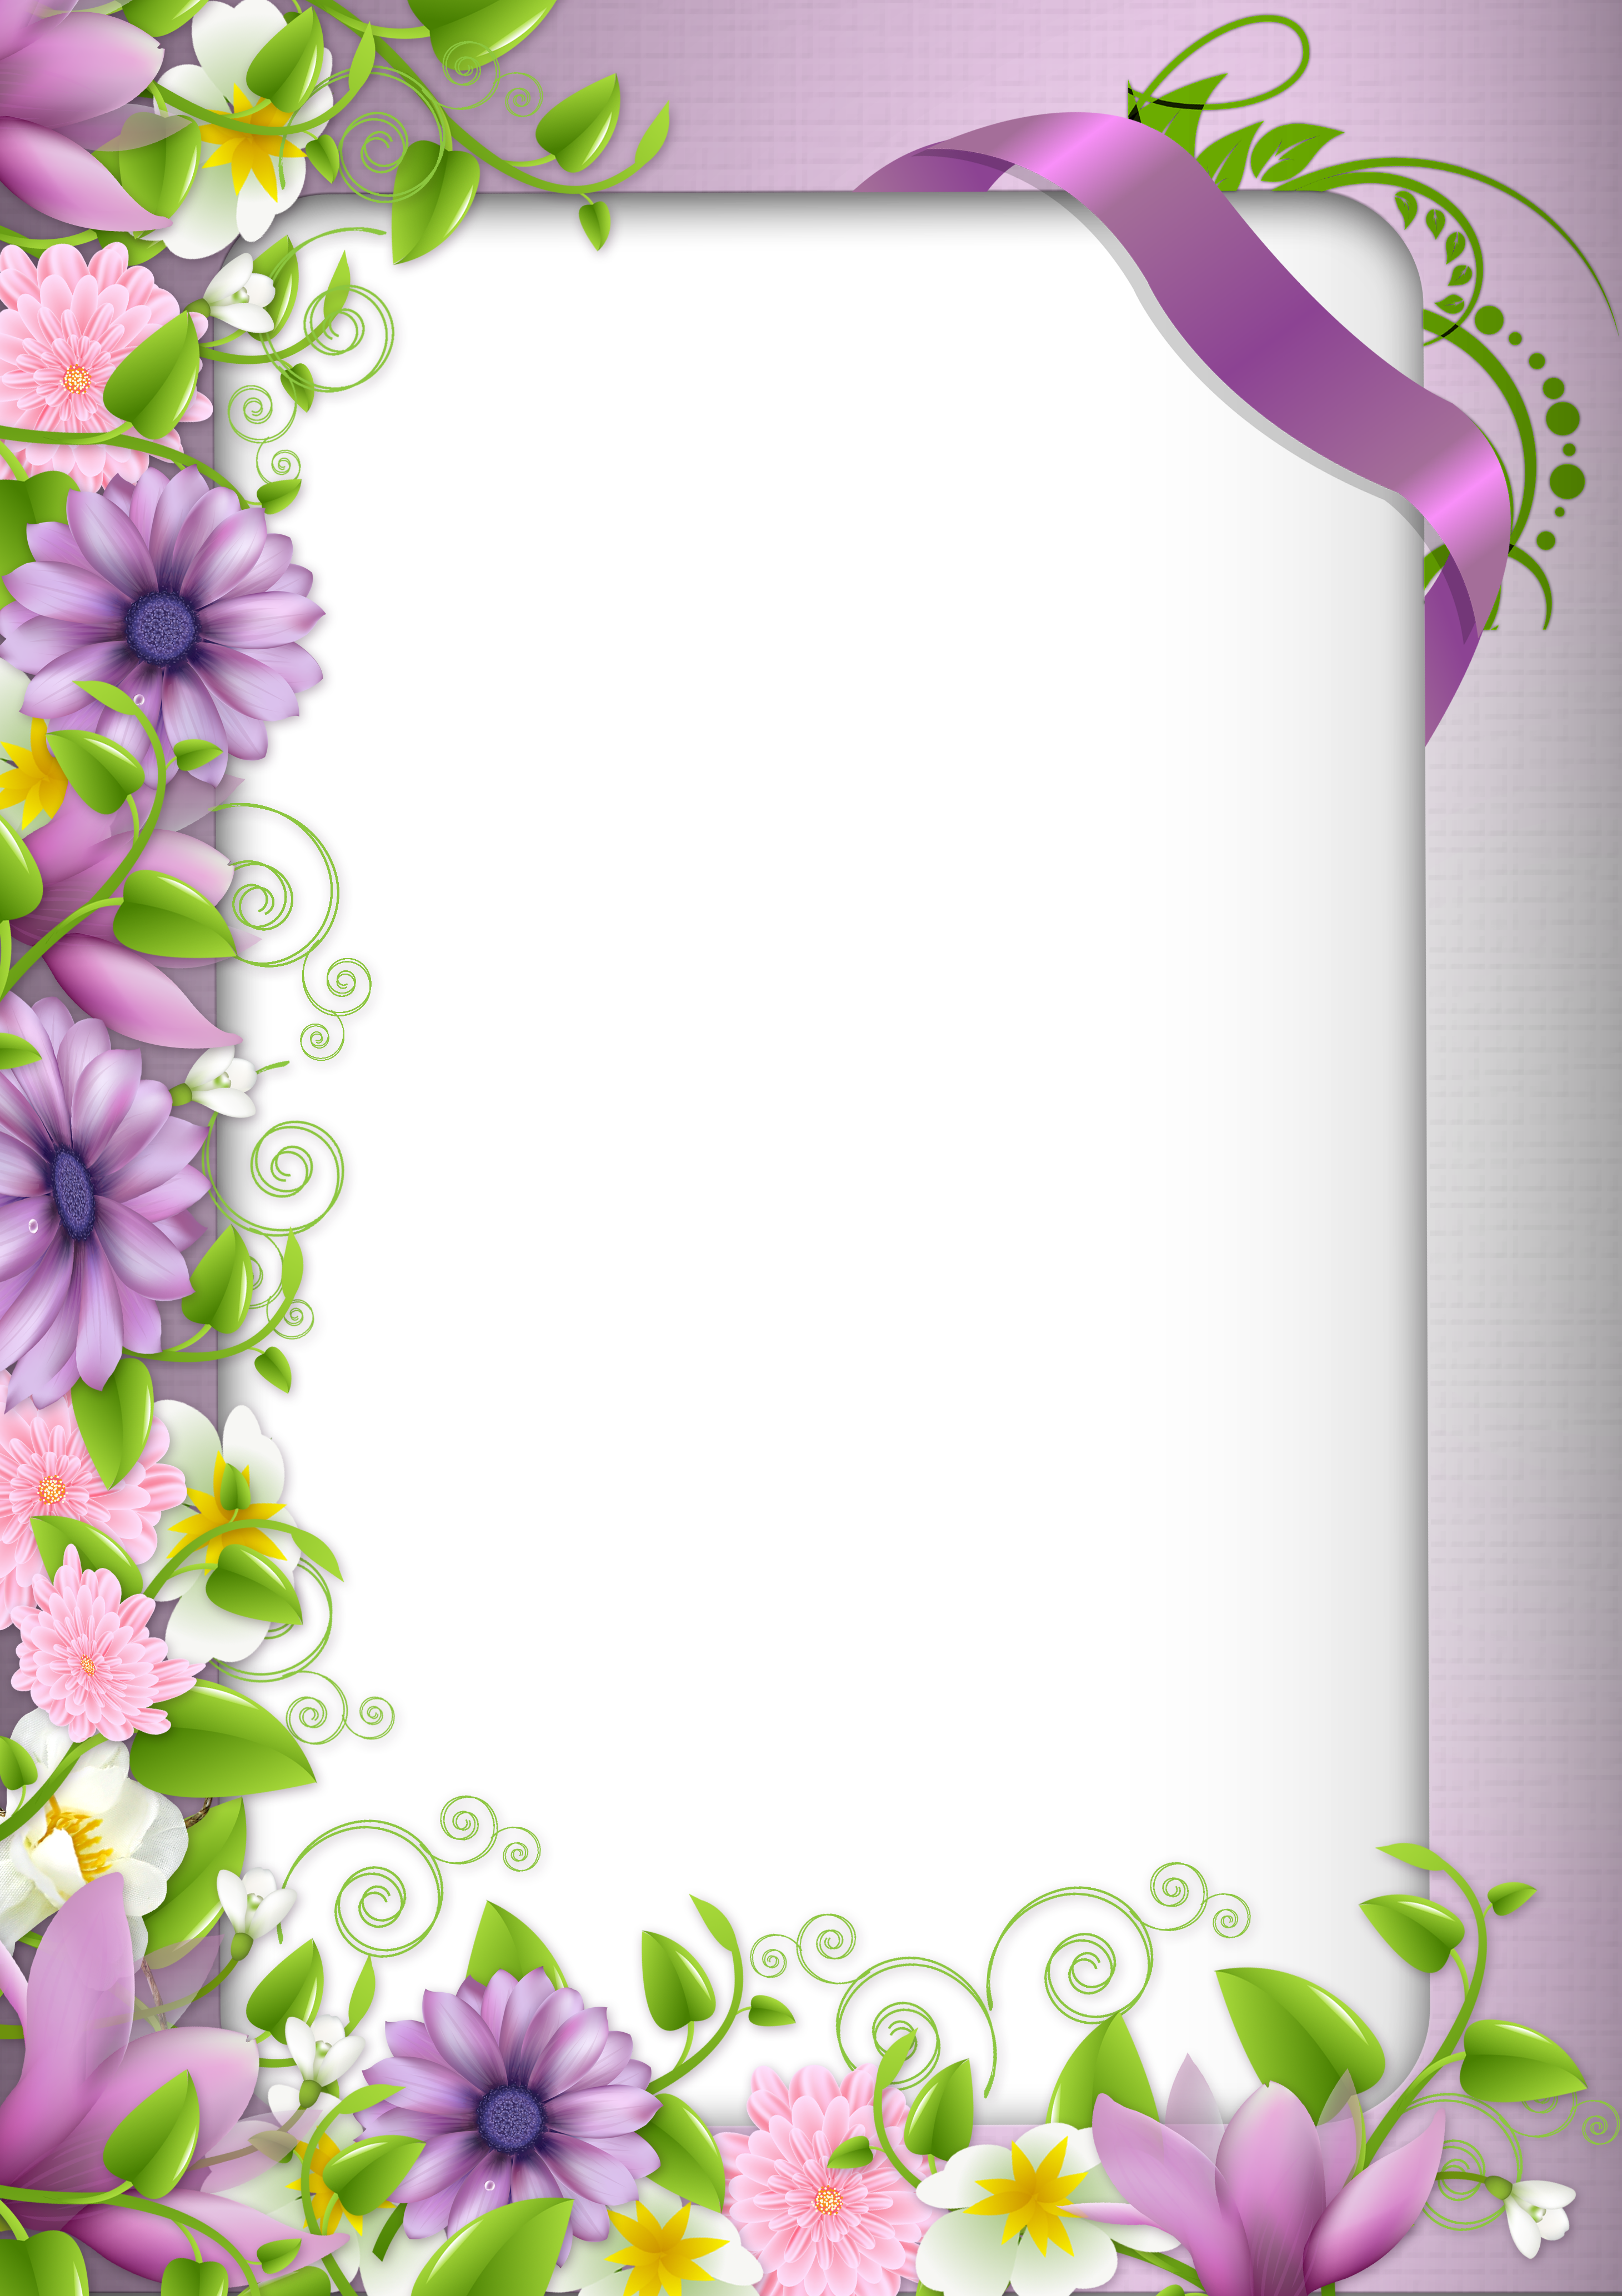 Transparent PNG Photo Frame with Purple Flowers | Bordered Paper ...